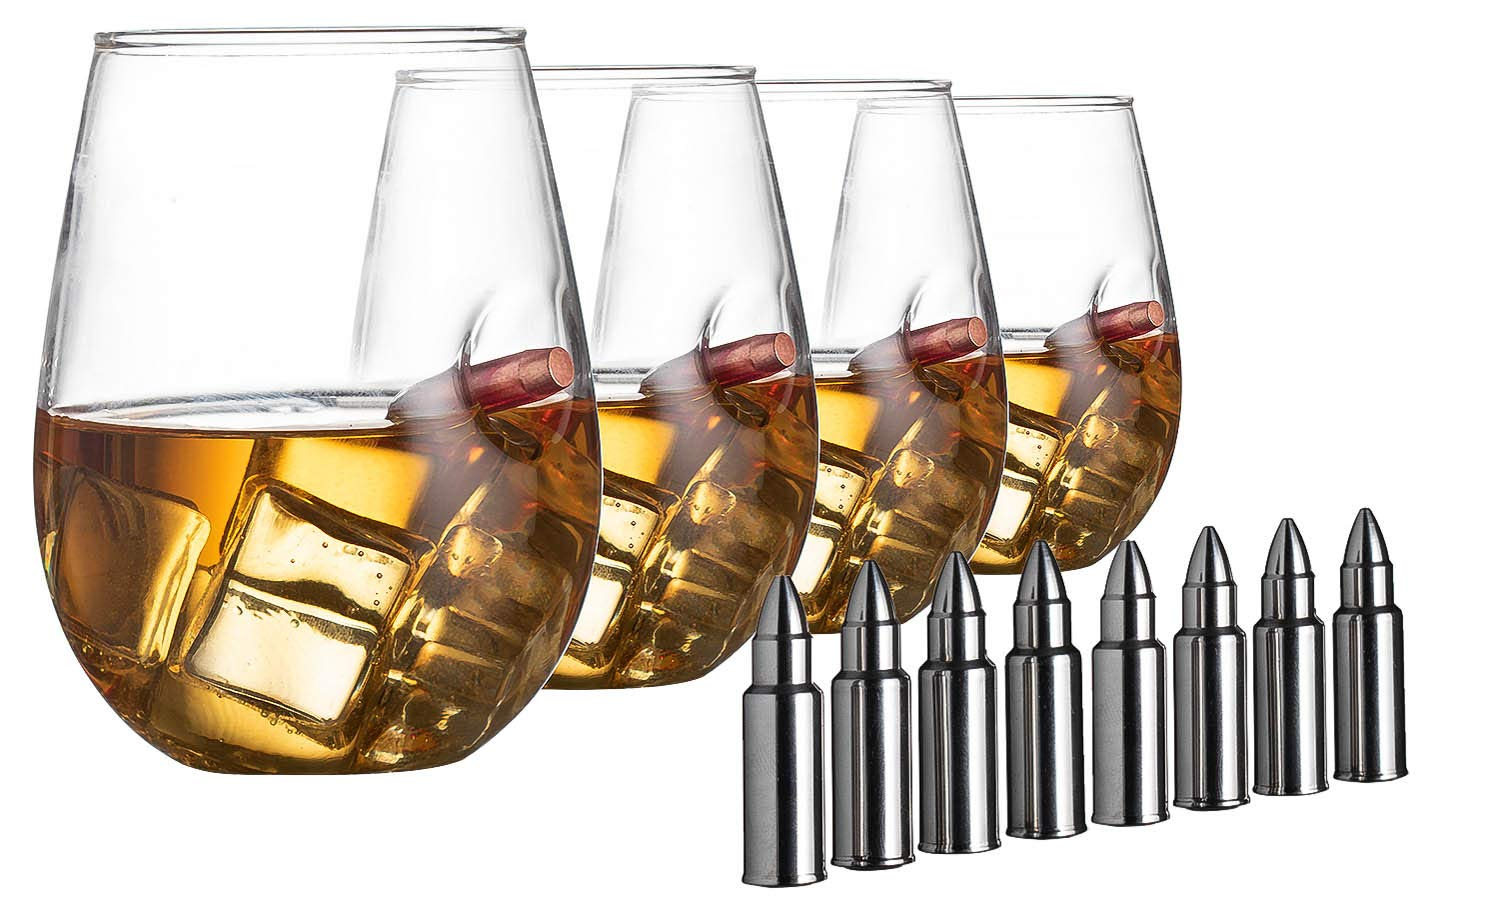 Bullet Glasses .308 Real Handmade, With 8 Bullet Shaped Whiskey Stones, Wine and Whiskey Glass Set of 4 Stemless Wine and Liquor Glasses, Tumbler Drinks Glassware By The Wine Savant